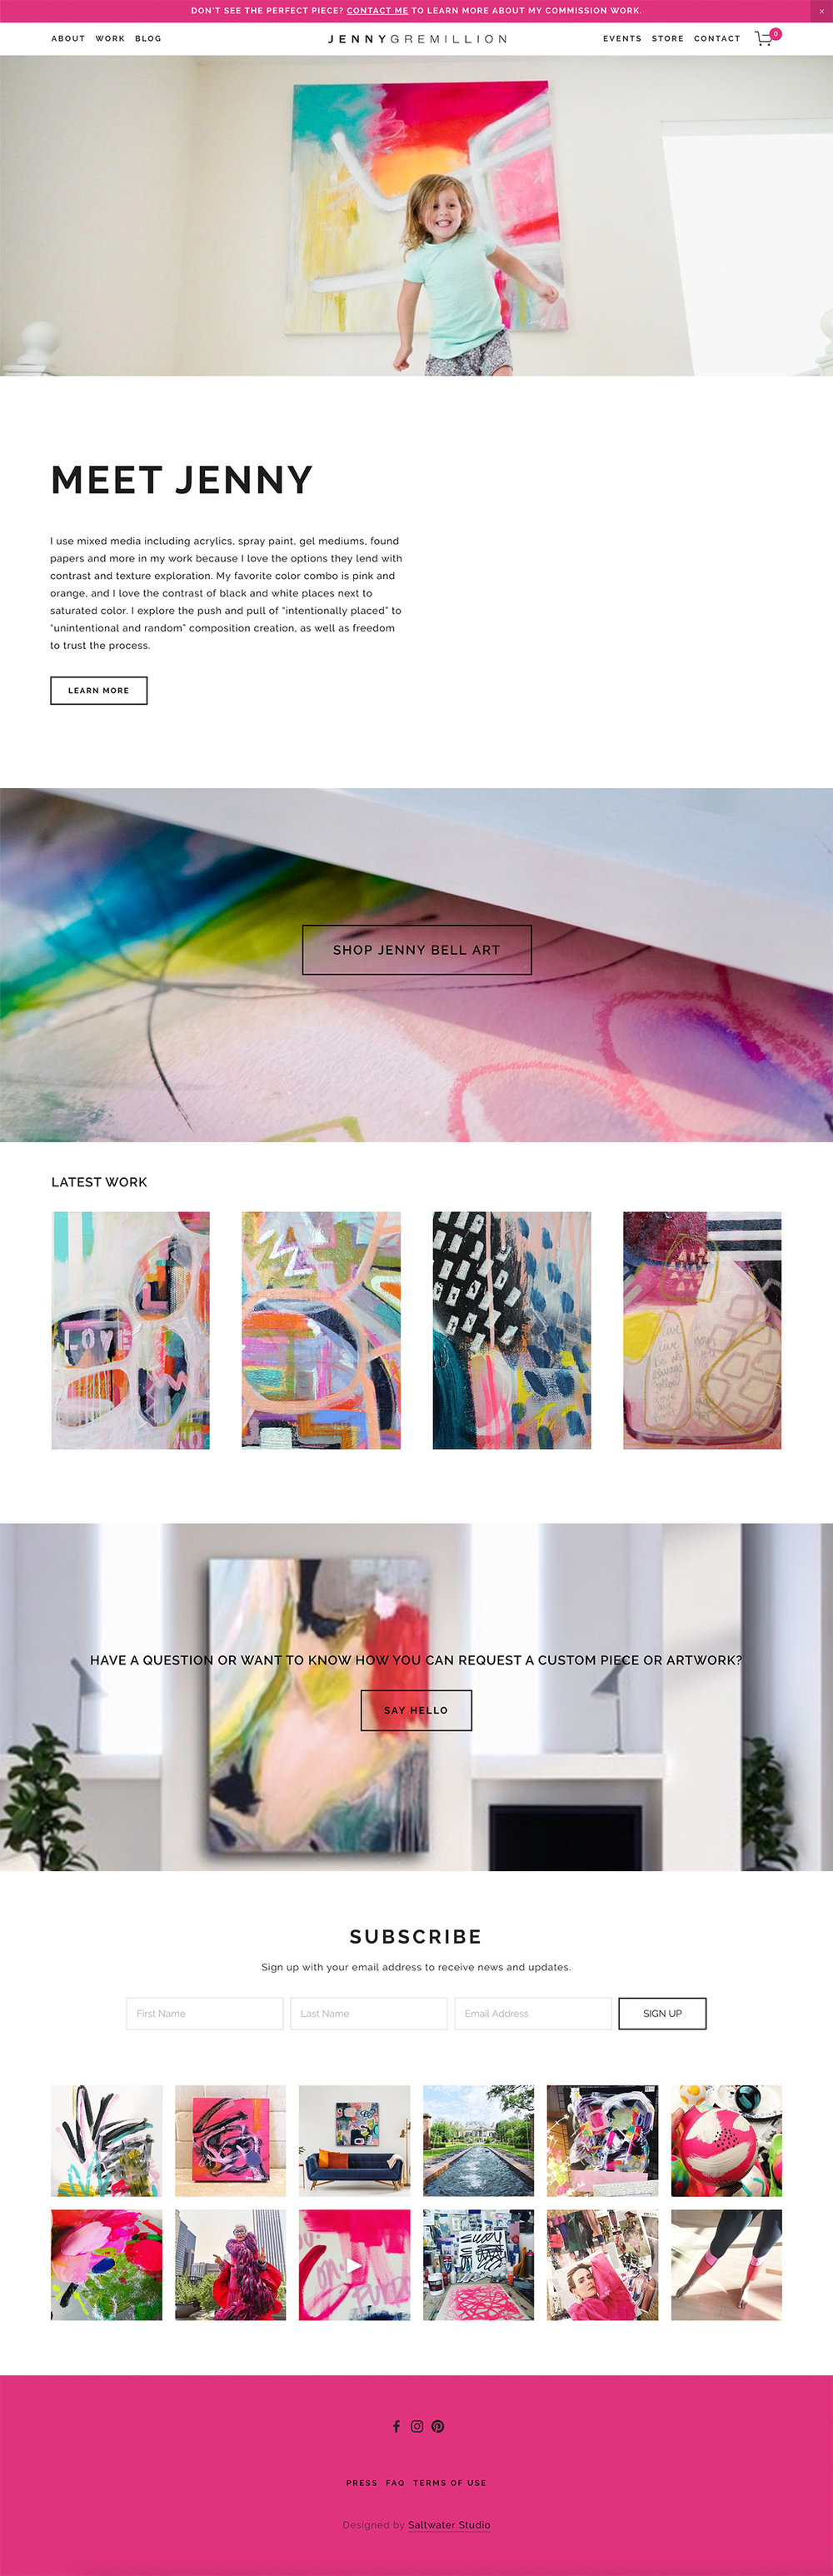 Artist Website Design Bright and Airy with Splashes of Color,  Abstract Expression Artist Website Design